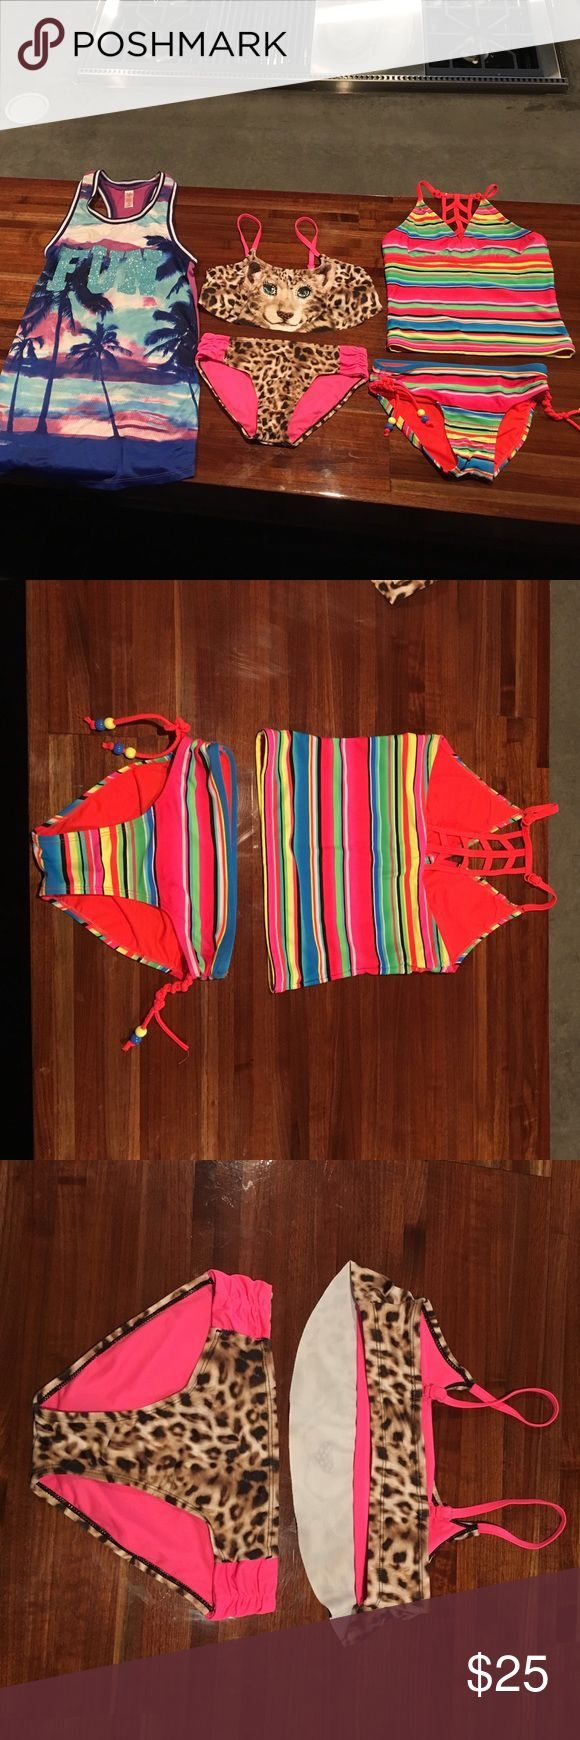 Justice swimsuits and coverup Leopard print bikini and multi stripe bikini with cute back detail and also a racer back cover up all from justice size 10 Justice Swim Bikinis